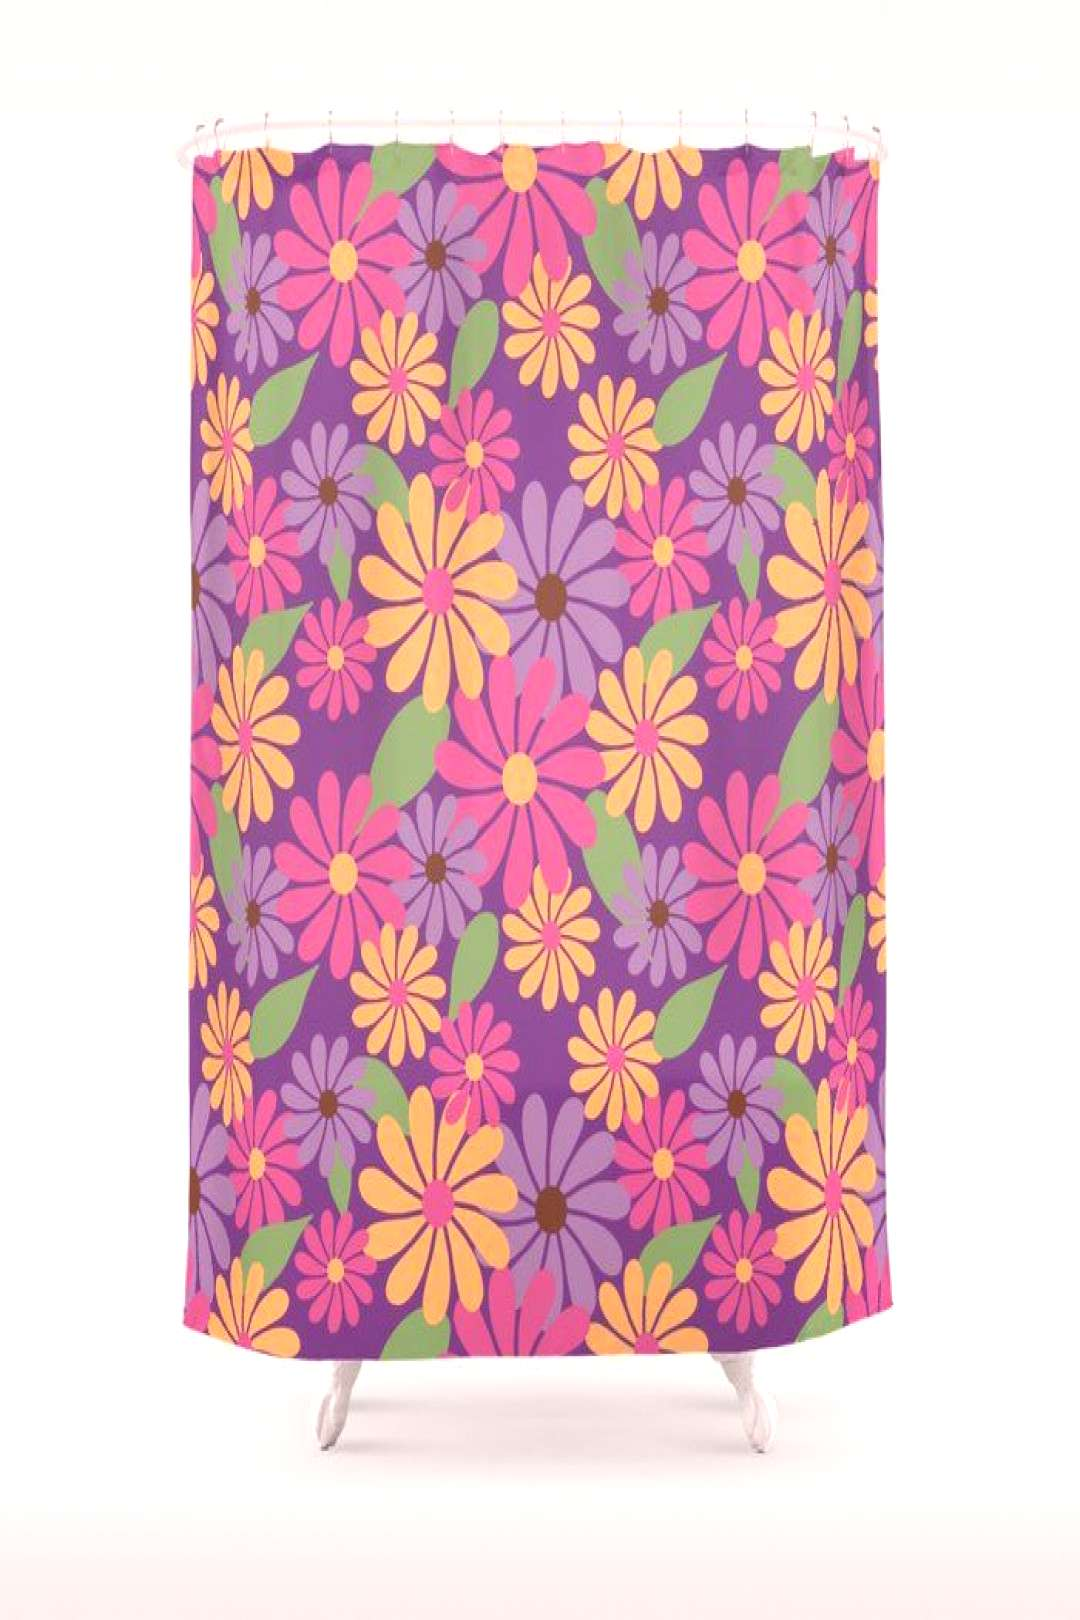 Pink Summer Floral Print Shower Curtain by lavendermintgraphics Colorful Retro Floral Summer Print